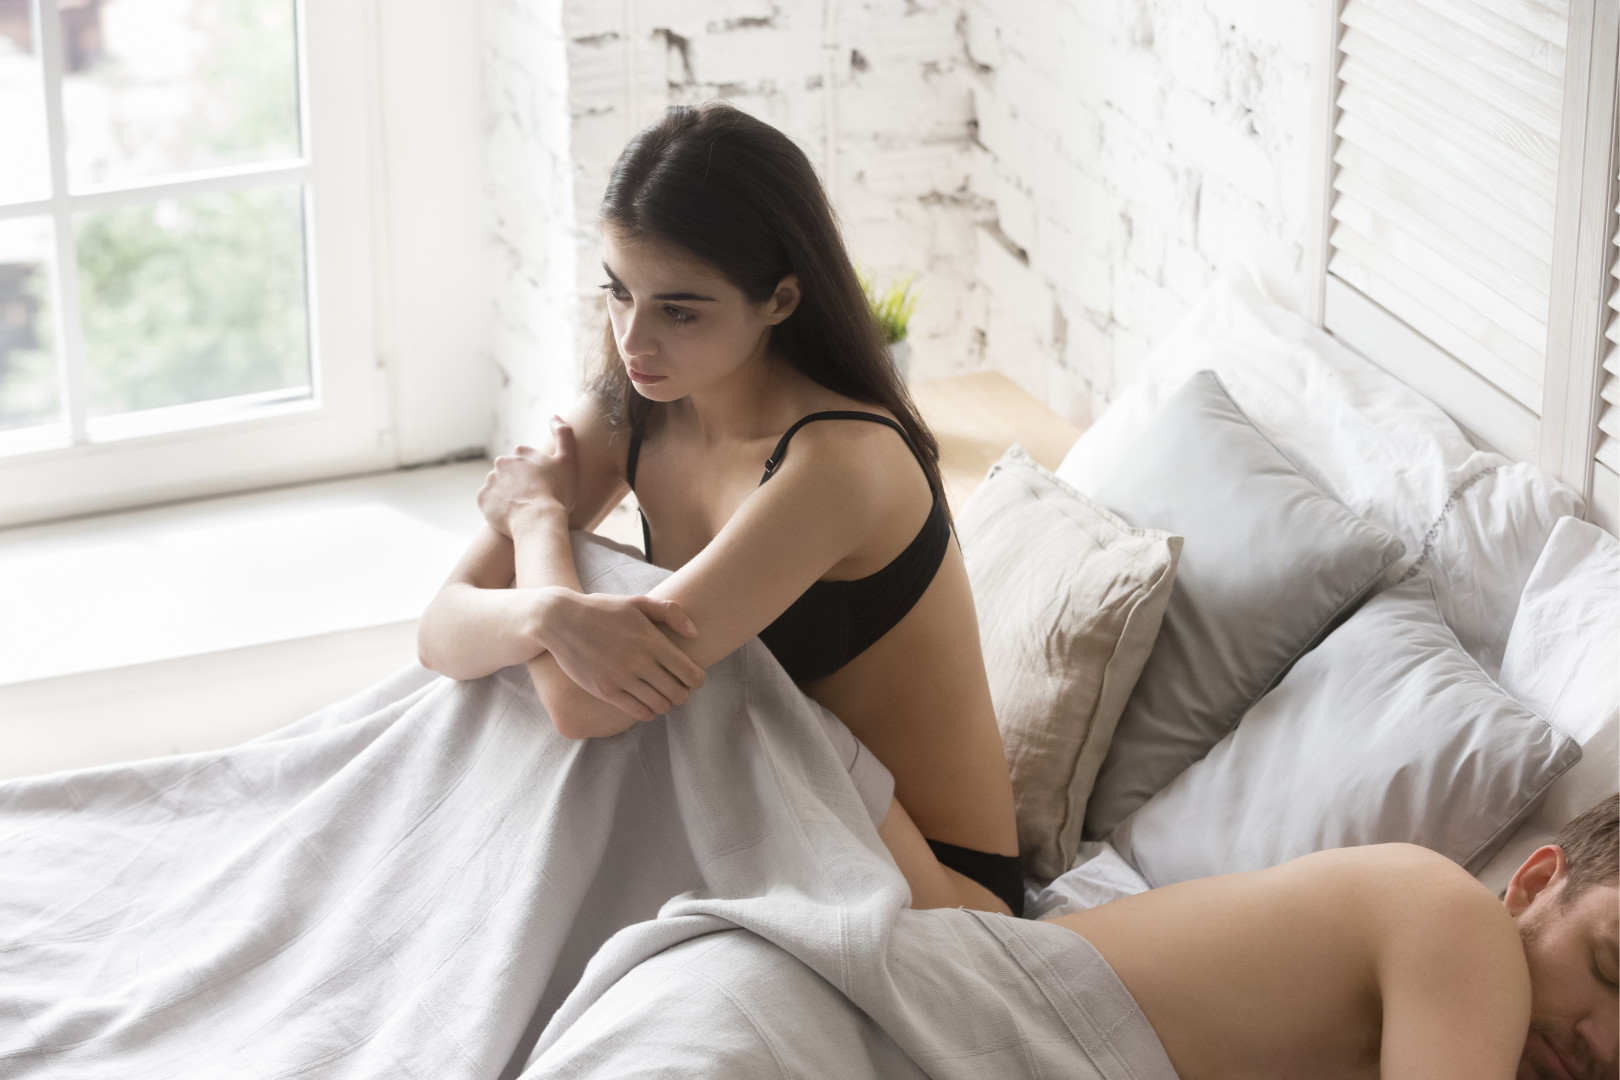 woman dealing with relationship problems